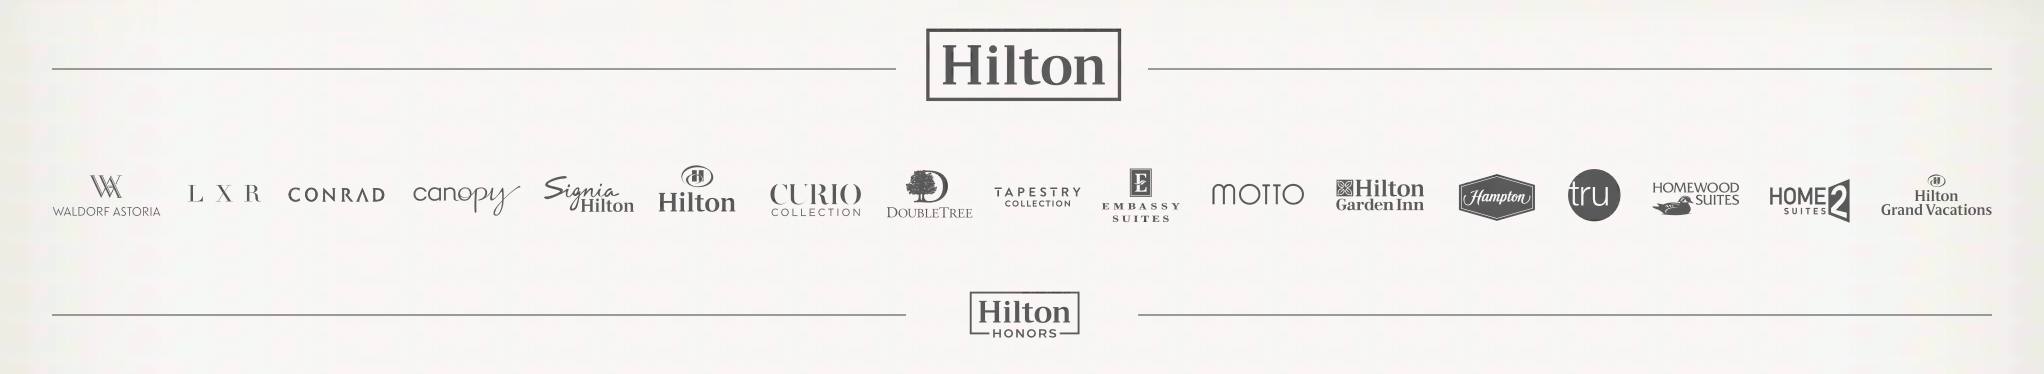 20 Best Ways To Earn Lots of Hilton Honors Points [2019]